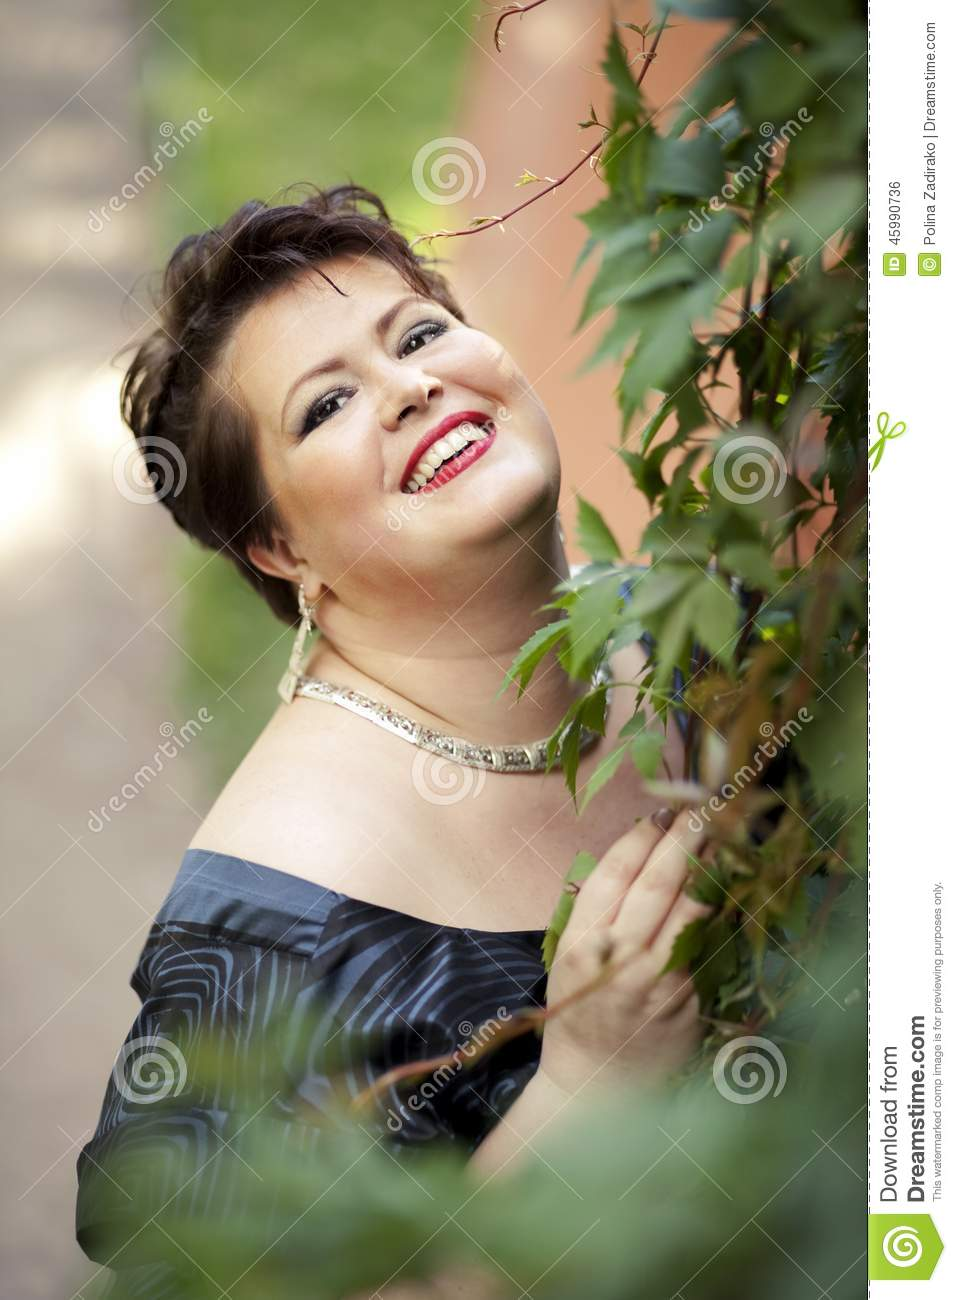 chubby woman smiling stock photo. image of model, overweight - 45990736